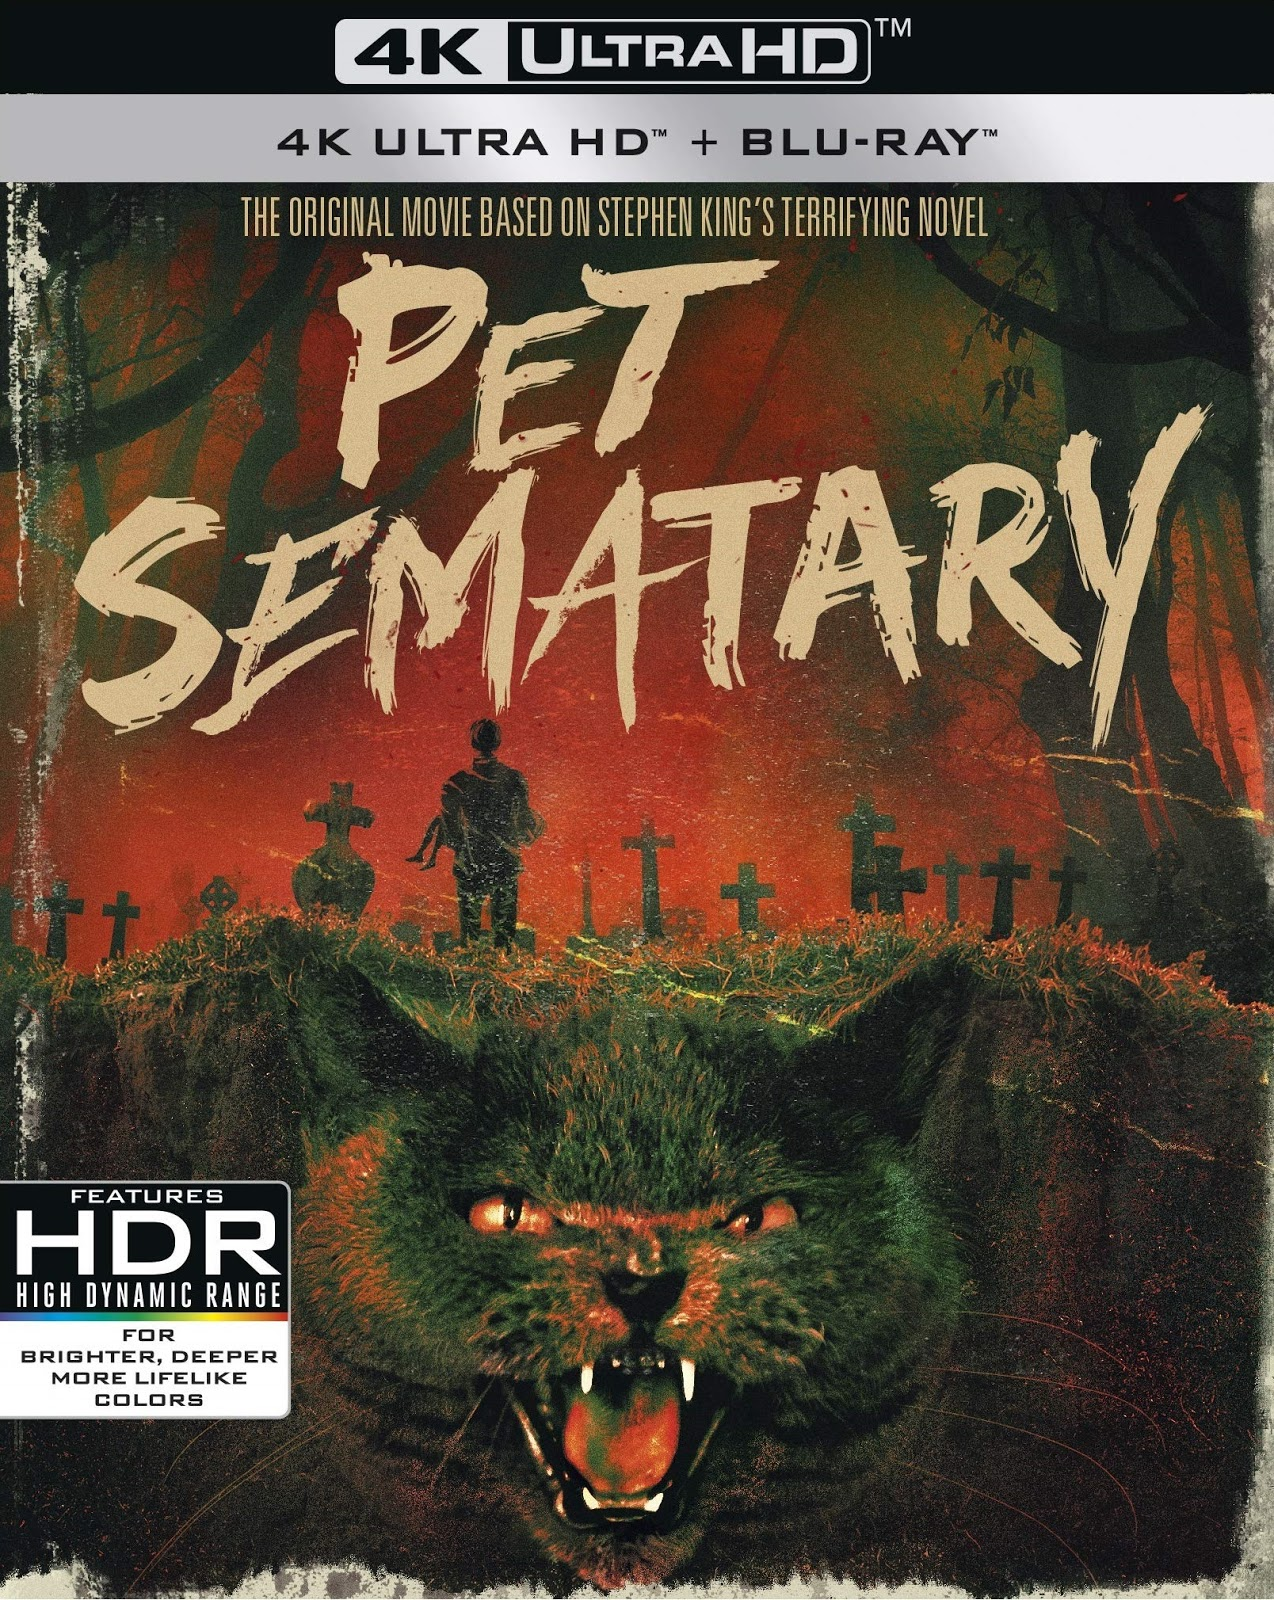 The Truth Inside The Lie A Look At The New Blu Ray Of The Old Pet Sematary